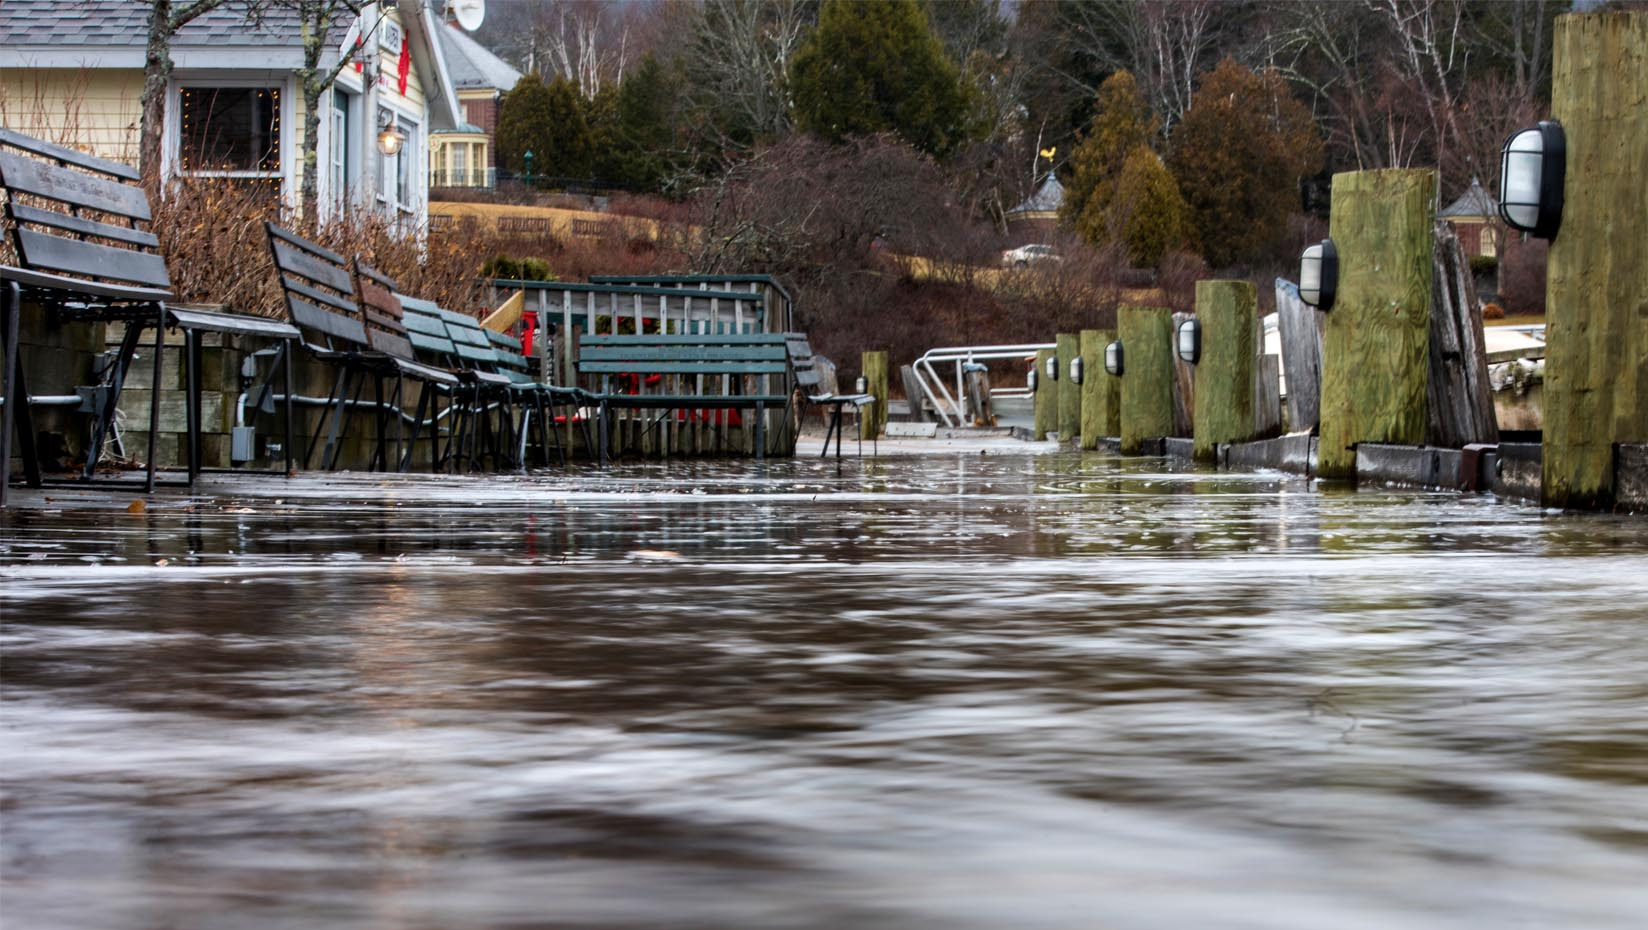 A photo of coastal flooding in Maine